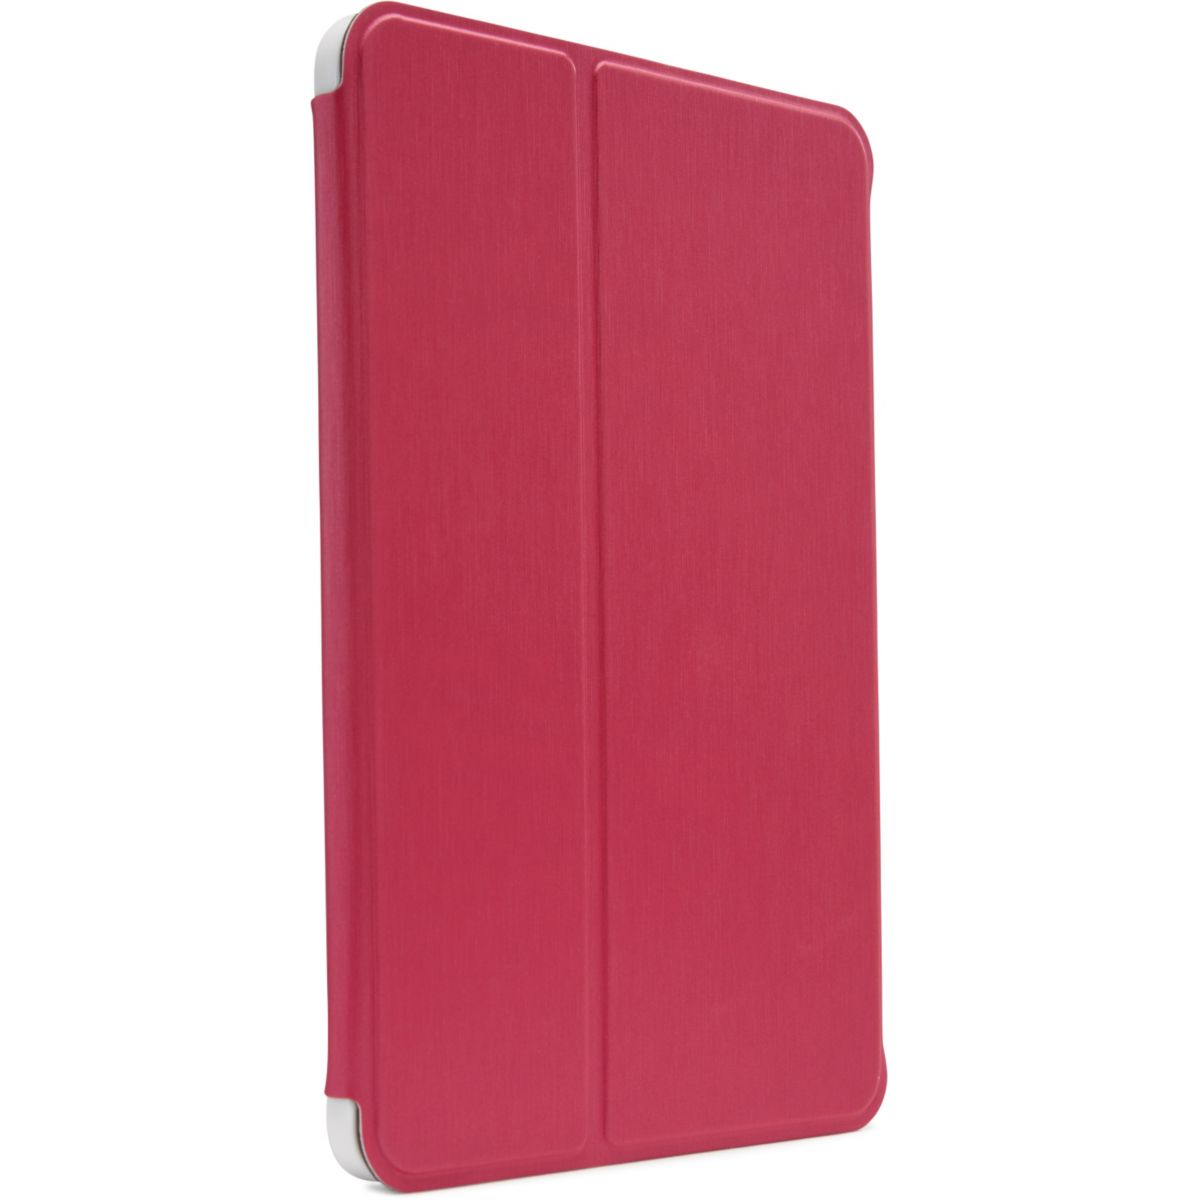 Folio caselogic ipad mini / mini retina rose - 20% de remise immédiate avec le code : cool20 (photo)